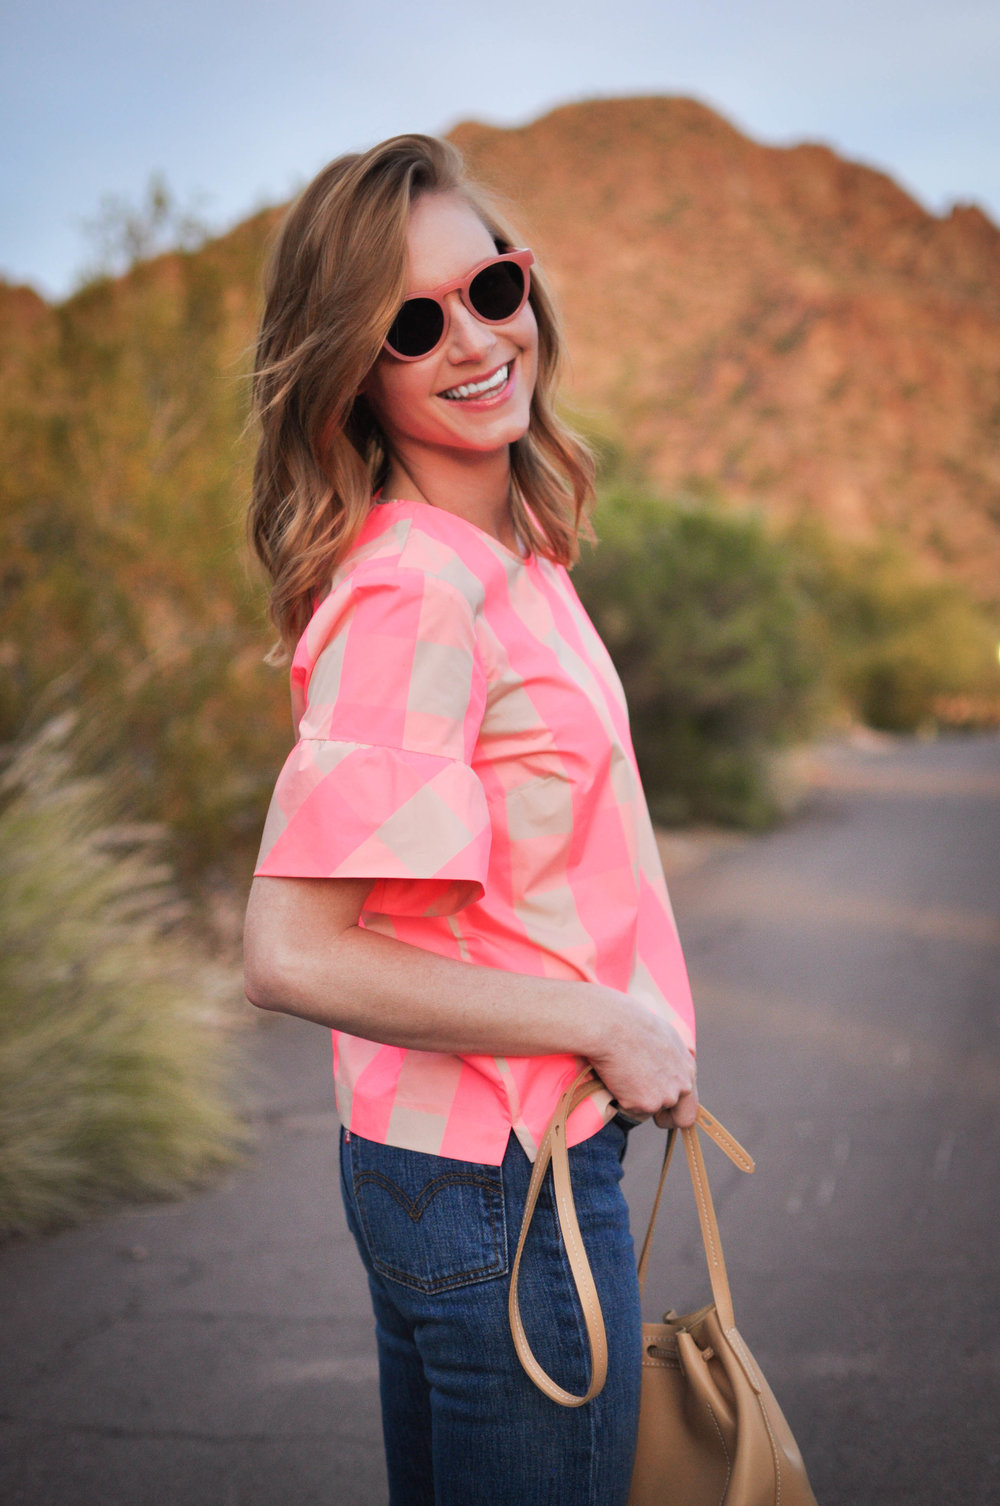 Smiling woman in pink sunglasses and top